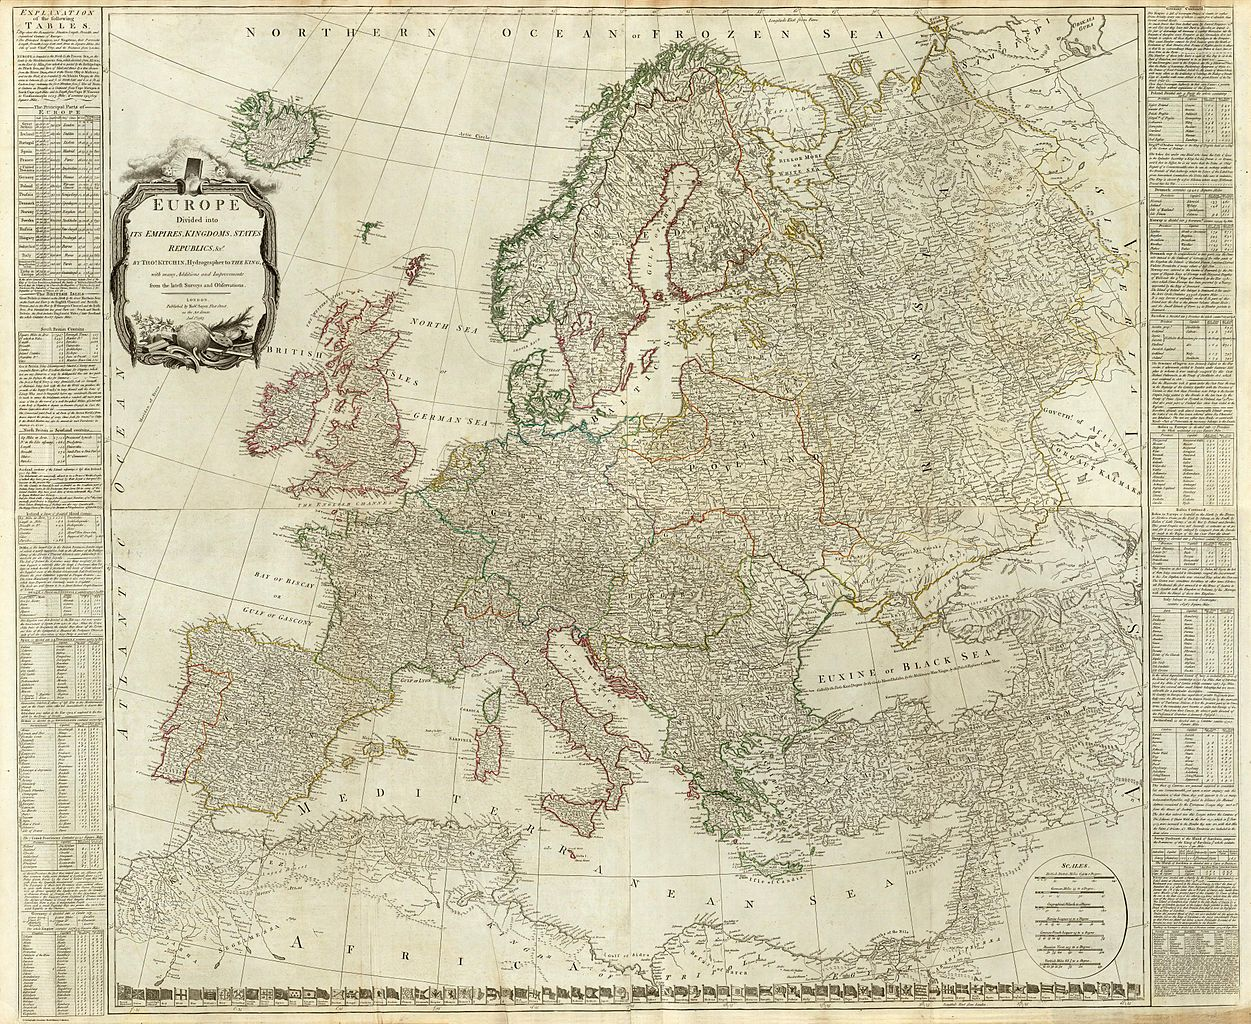 Composite of Europe divided into its empires, kingdoms, states, republics, by Thomas Kitchin